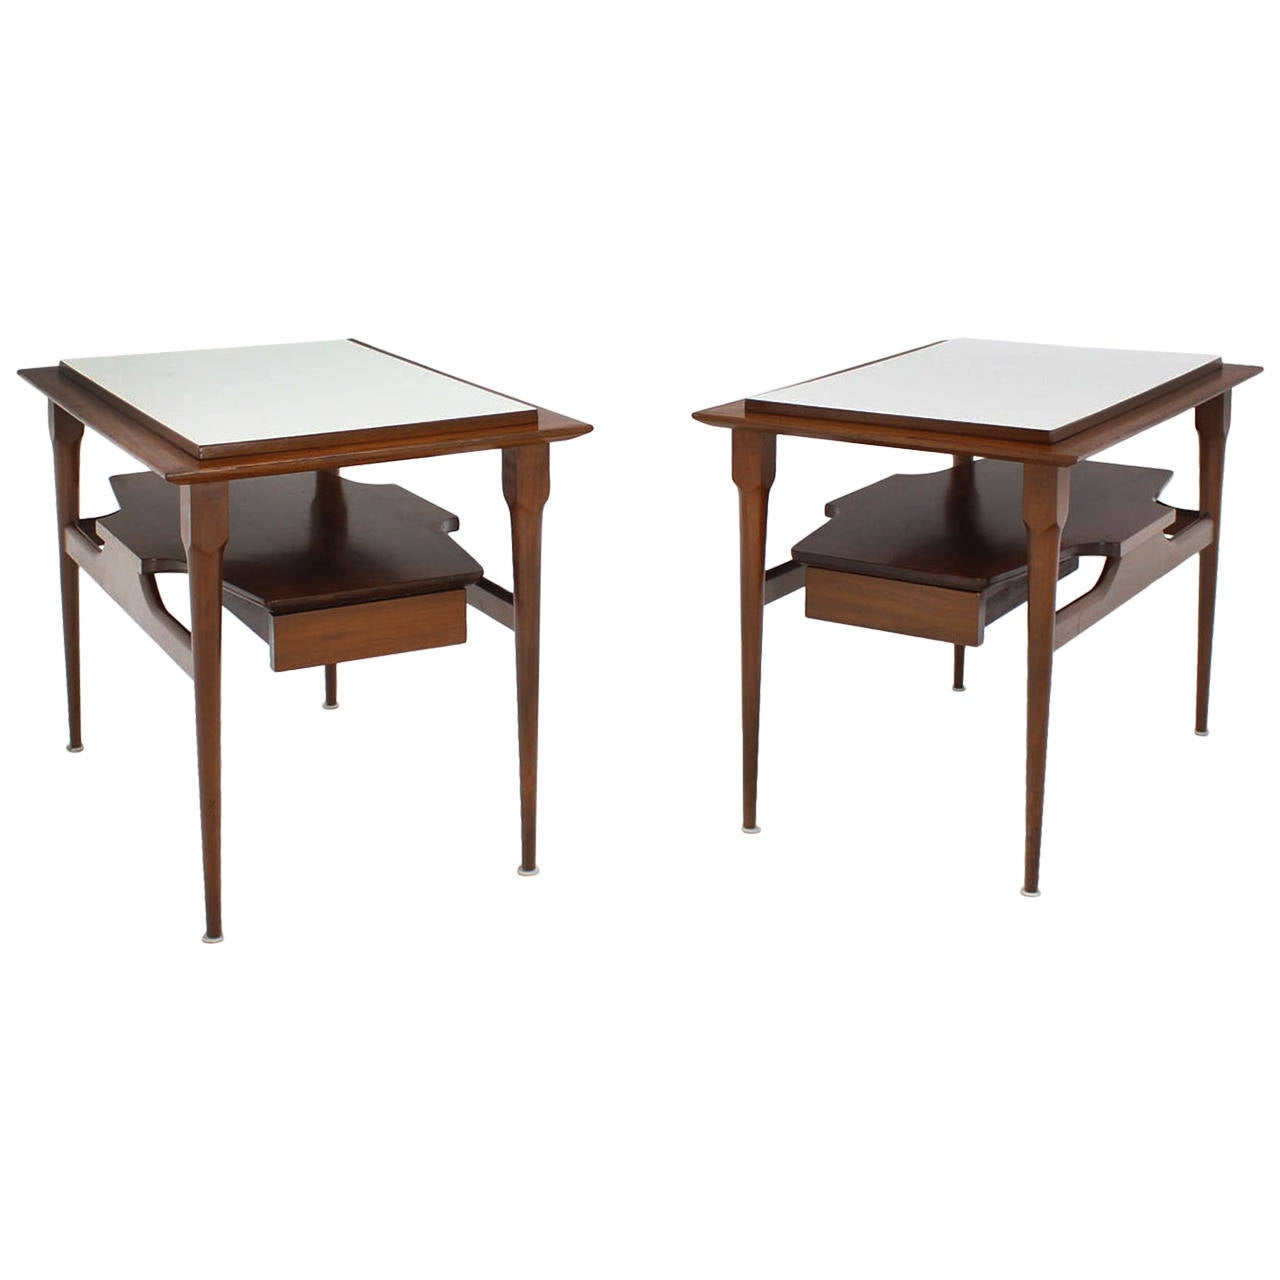 pair mid century modern walnut one drawer end tables night table with stands for white and copper side french country furniture direct urban lodge target metal accent glass top